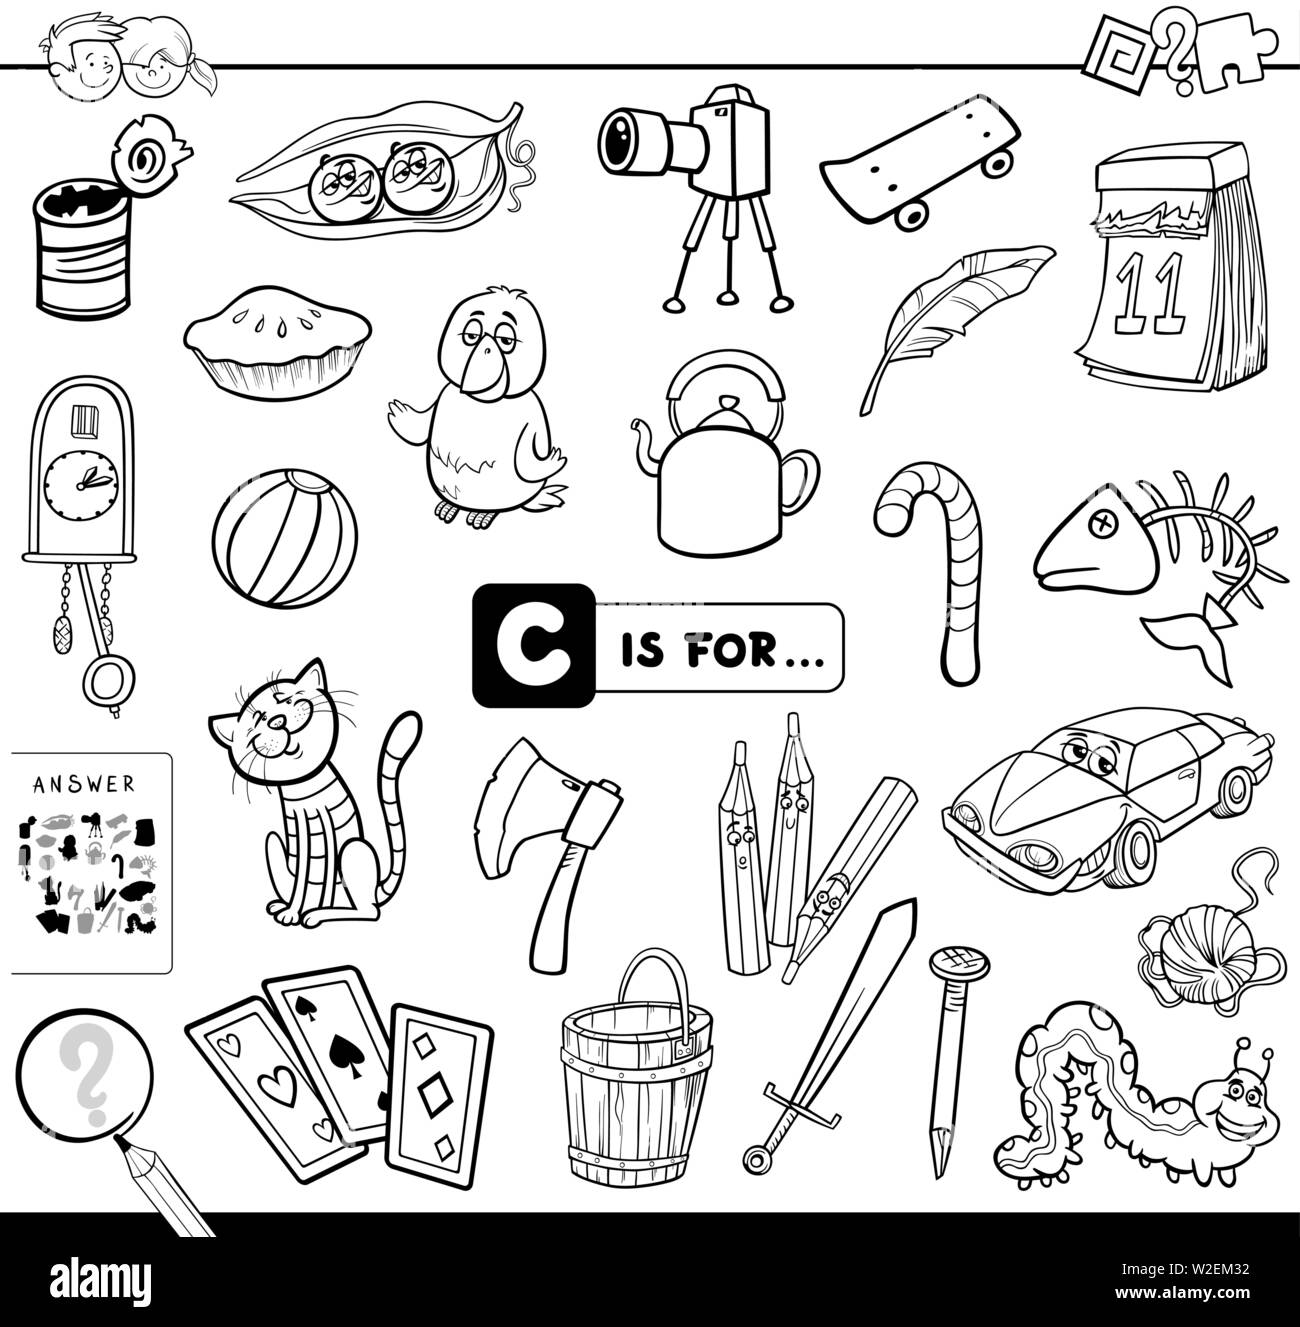 black and white cartoon illustration of finding picture starting with letter c educational game. Black Bedroom Furniture Sets. Home Design Ideas